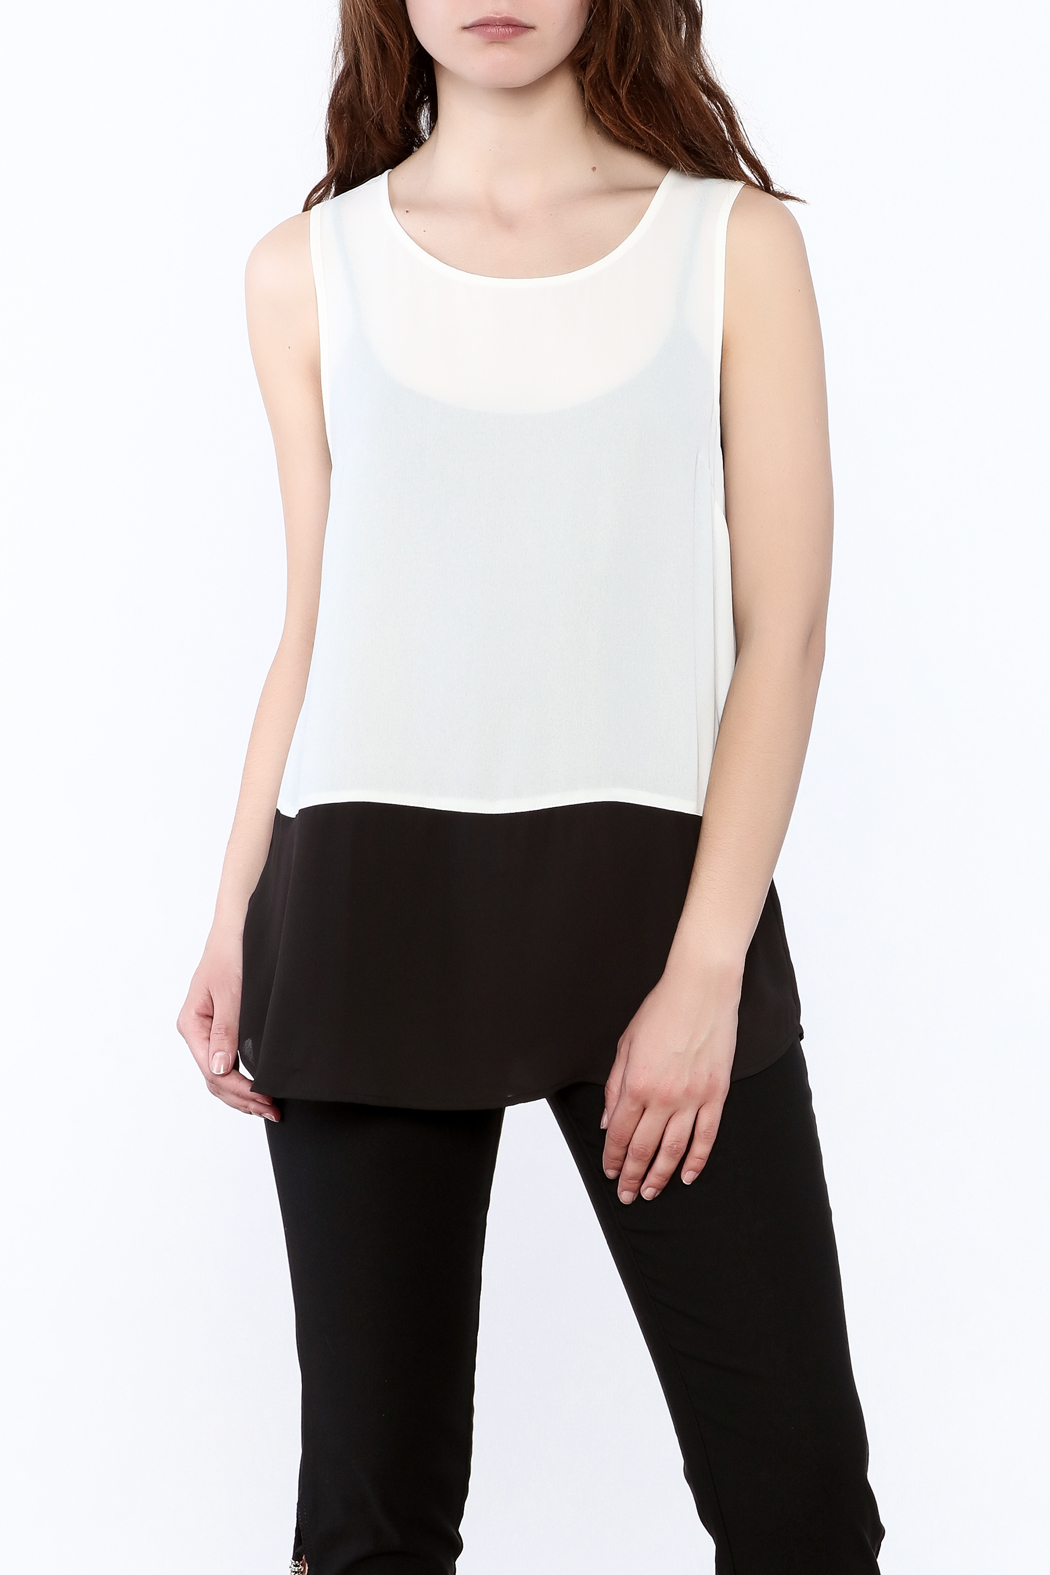 Charlie Paige Loose Fit Chiffon Top - Main Image